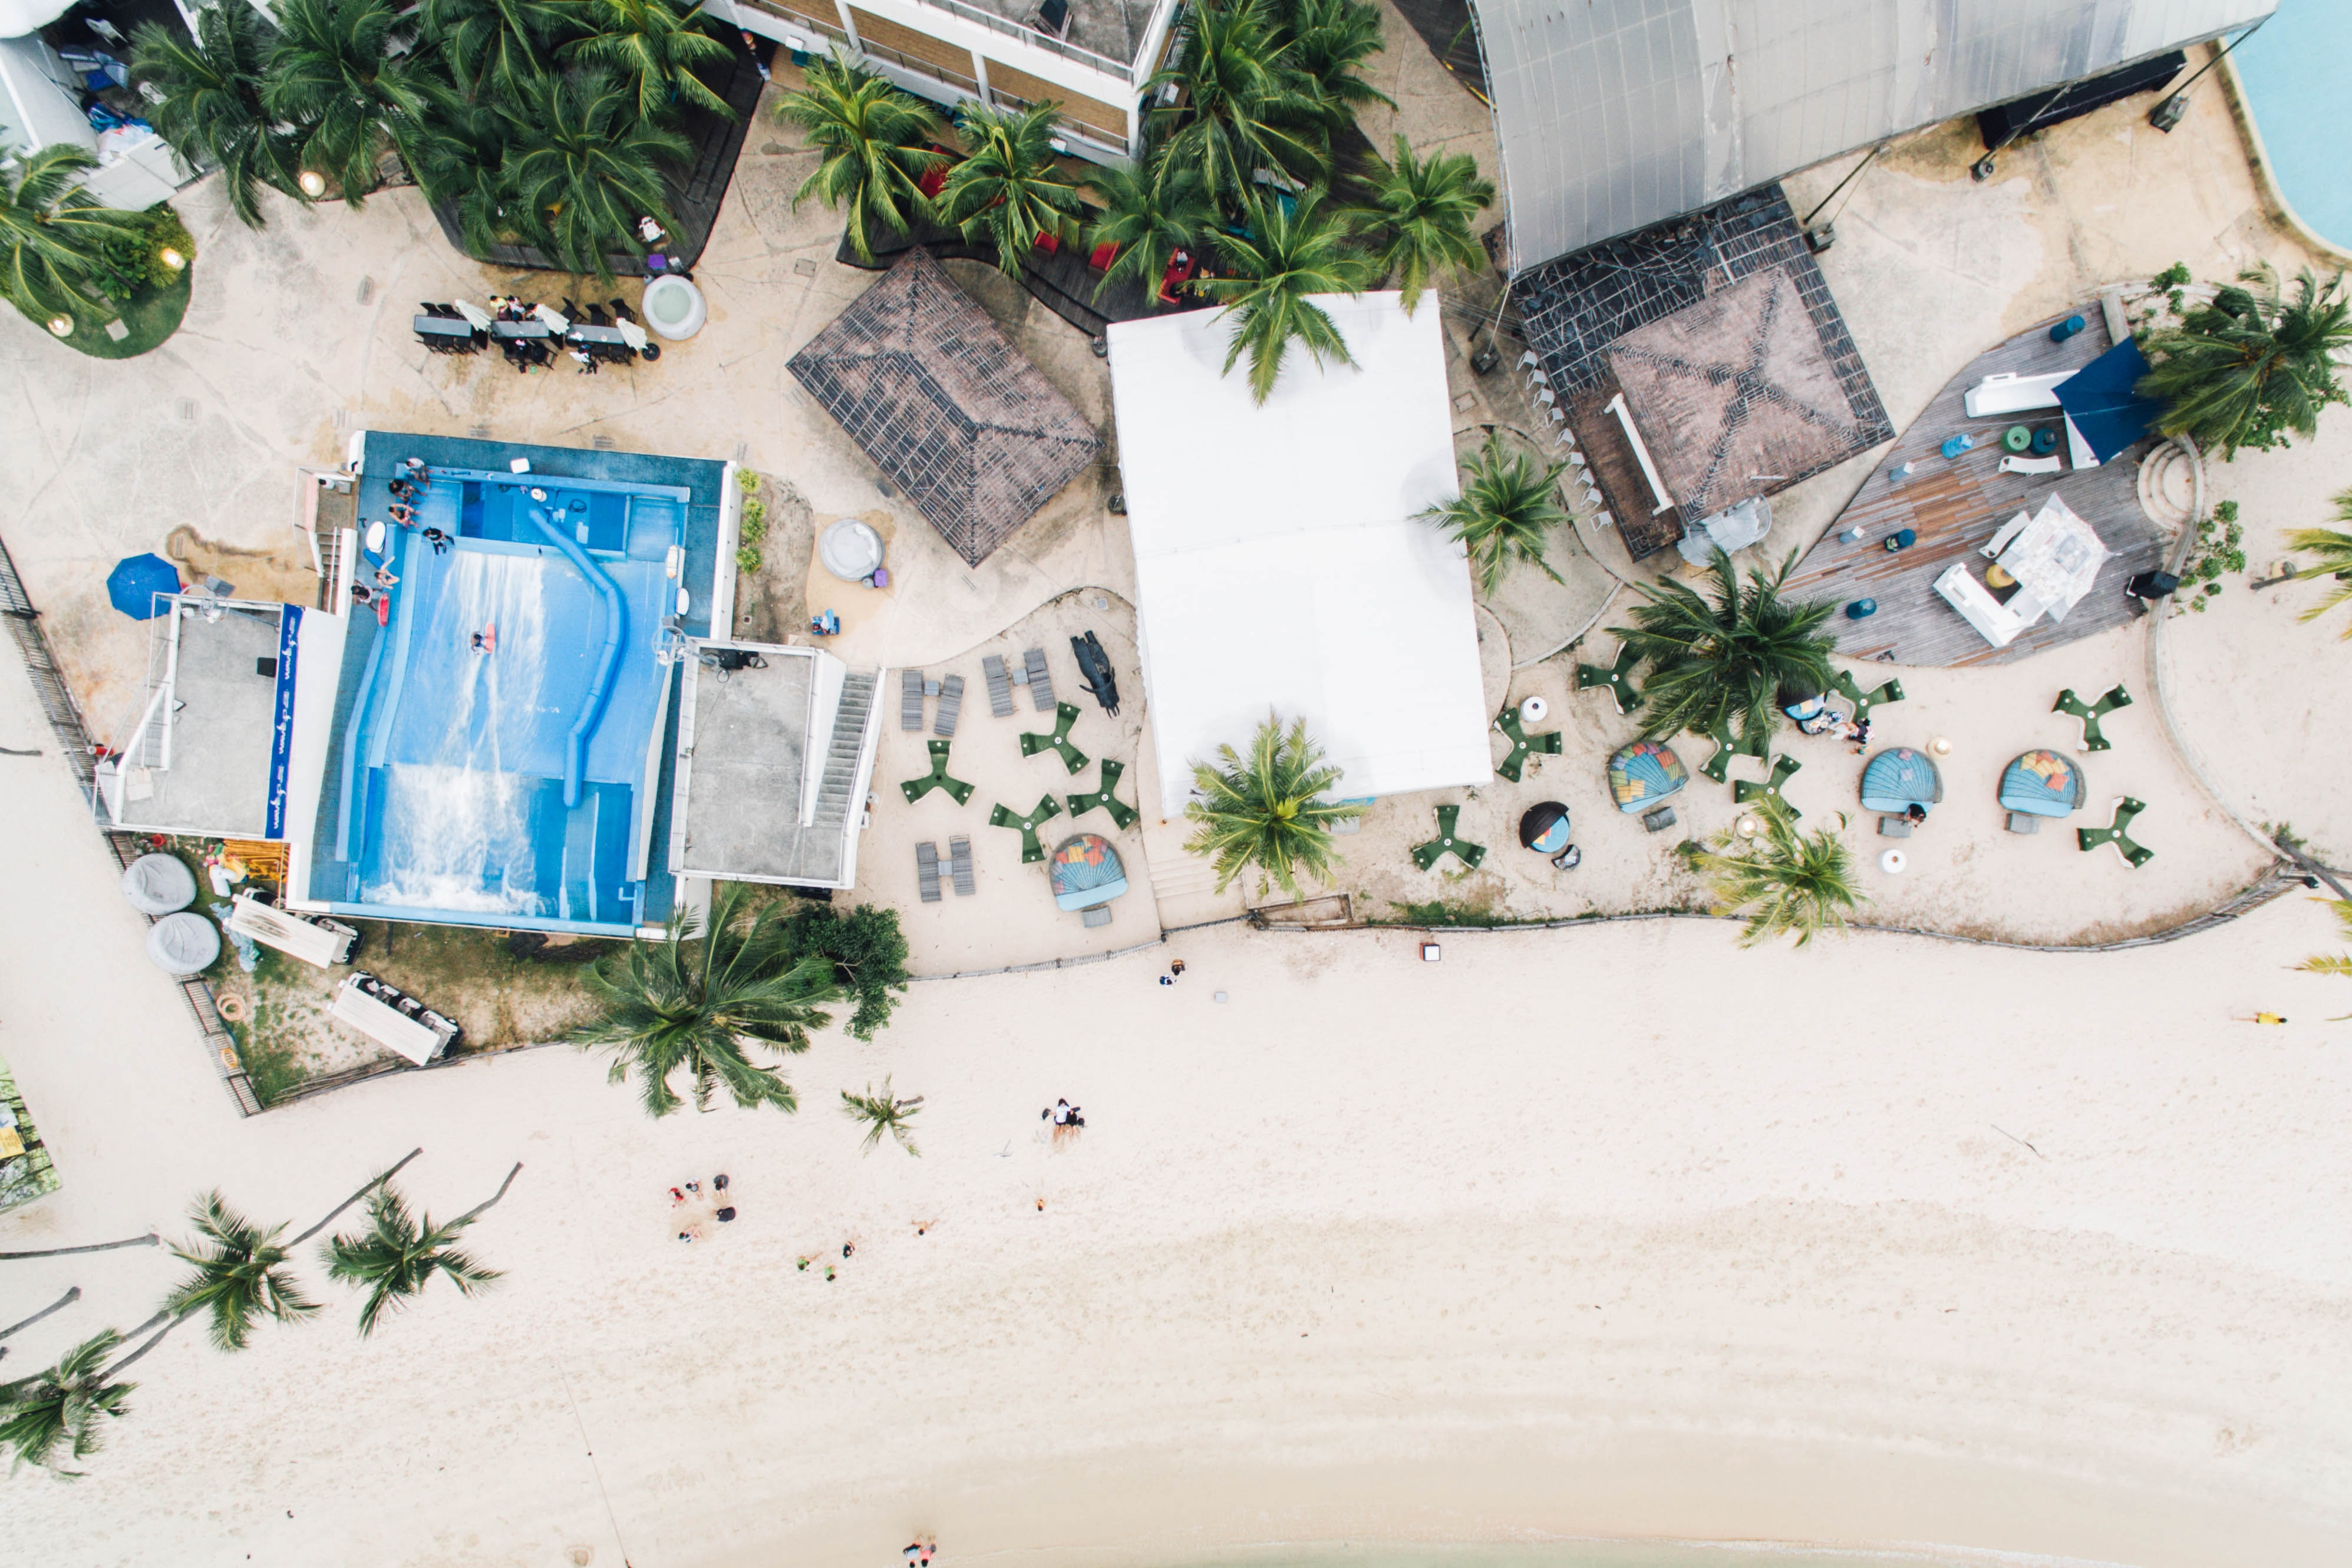 Drone aerial view of the coastal resort buildings on the sand beach at Sentosa